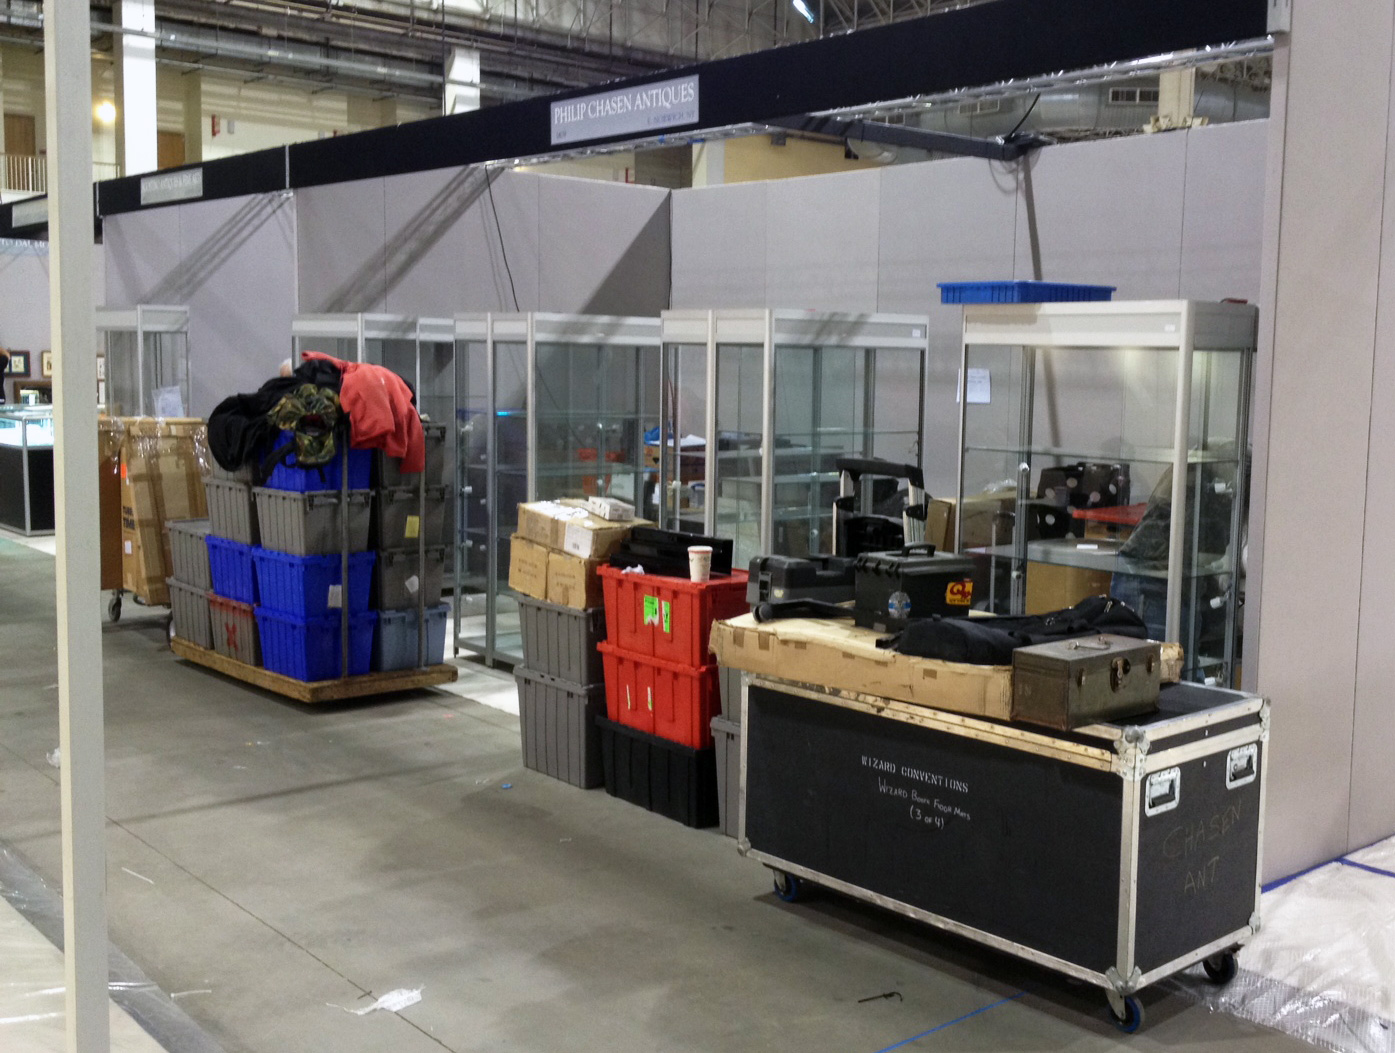 This is what our booth looks like when we start setting up